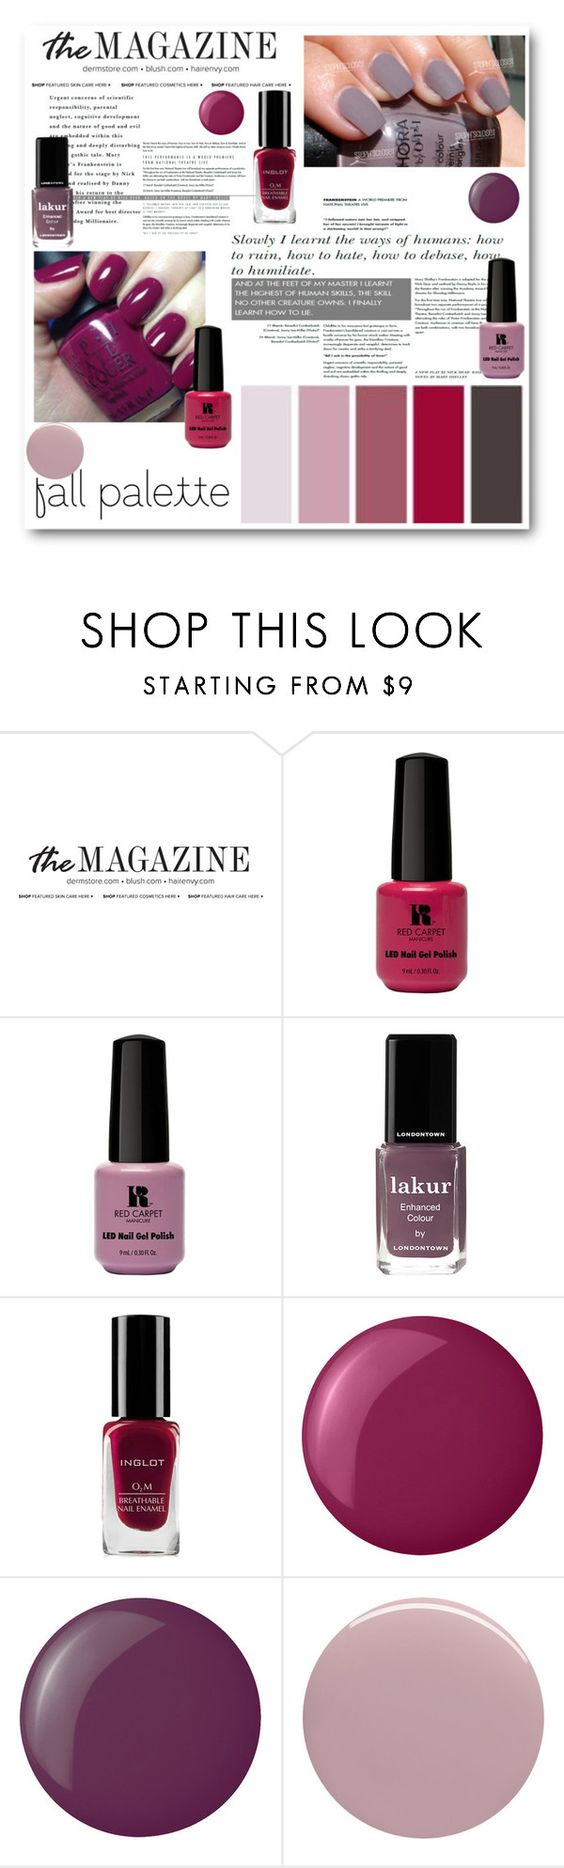 """M is for Manicure"" by bliznec ❤ liked on Polyvore featuring güzellik, Red Carpet Manicure, Londontown, Essie ve Nails Inc."